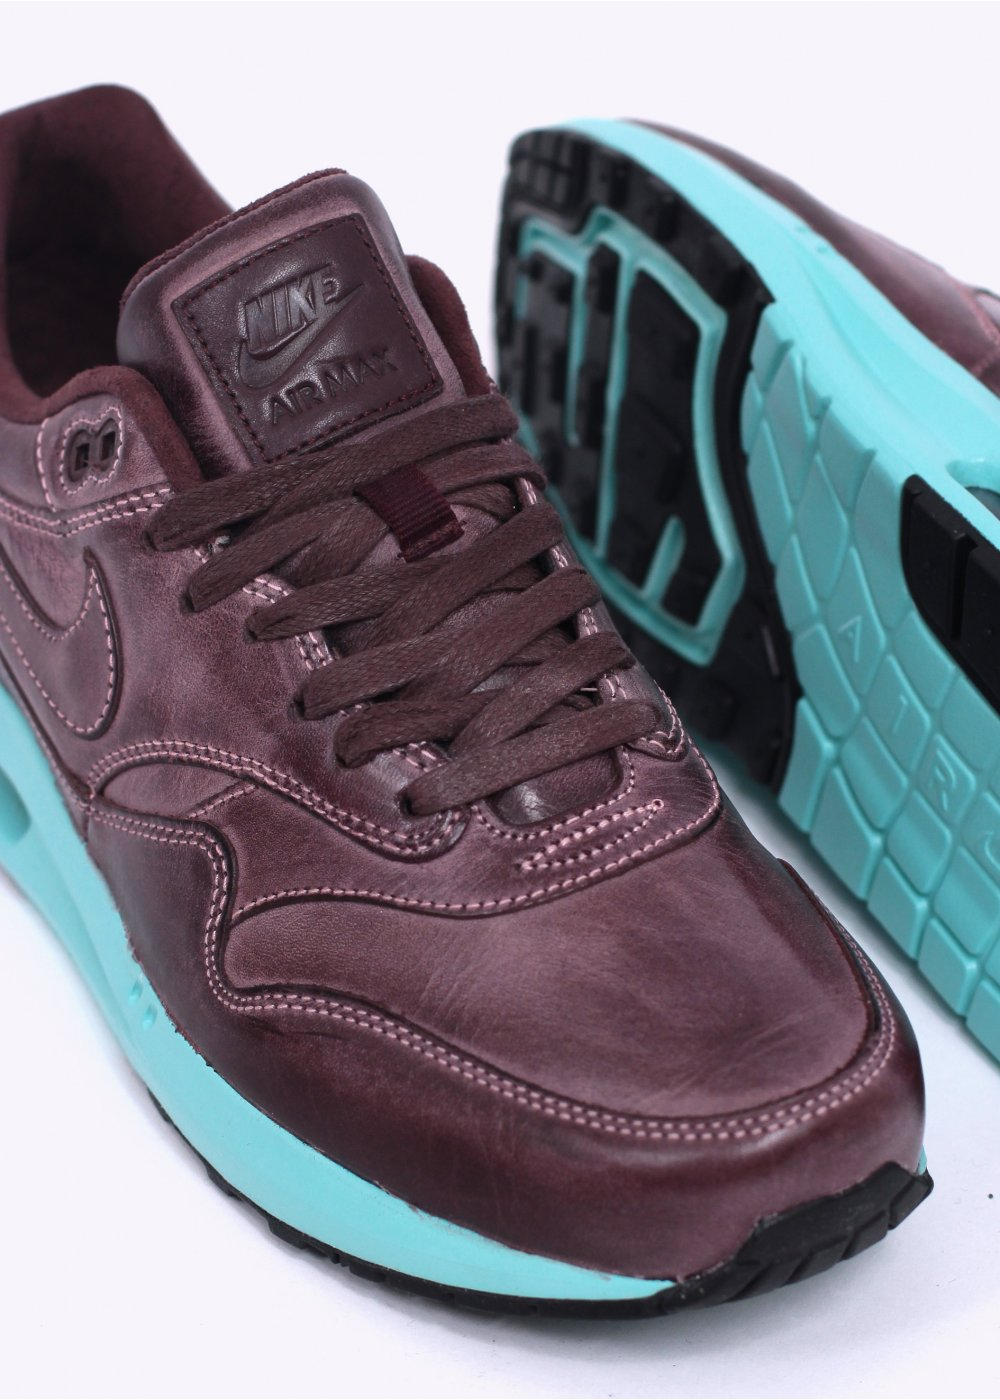 online store 23e28 0ead2 Nike Air Max Lunar 1 'Burnished Leather' LTR QS Trainers - Mahogany ...